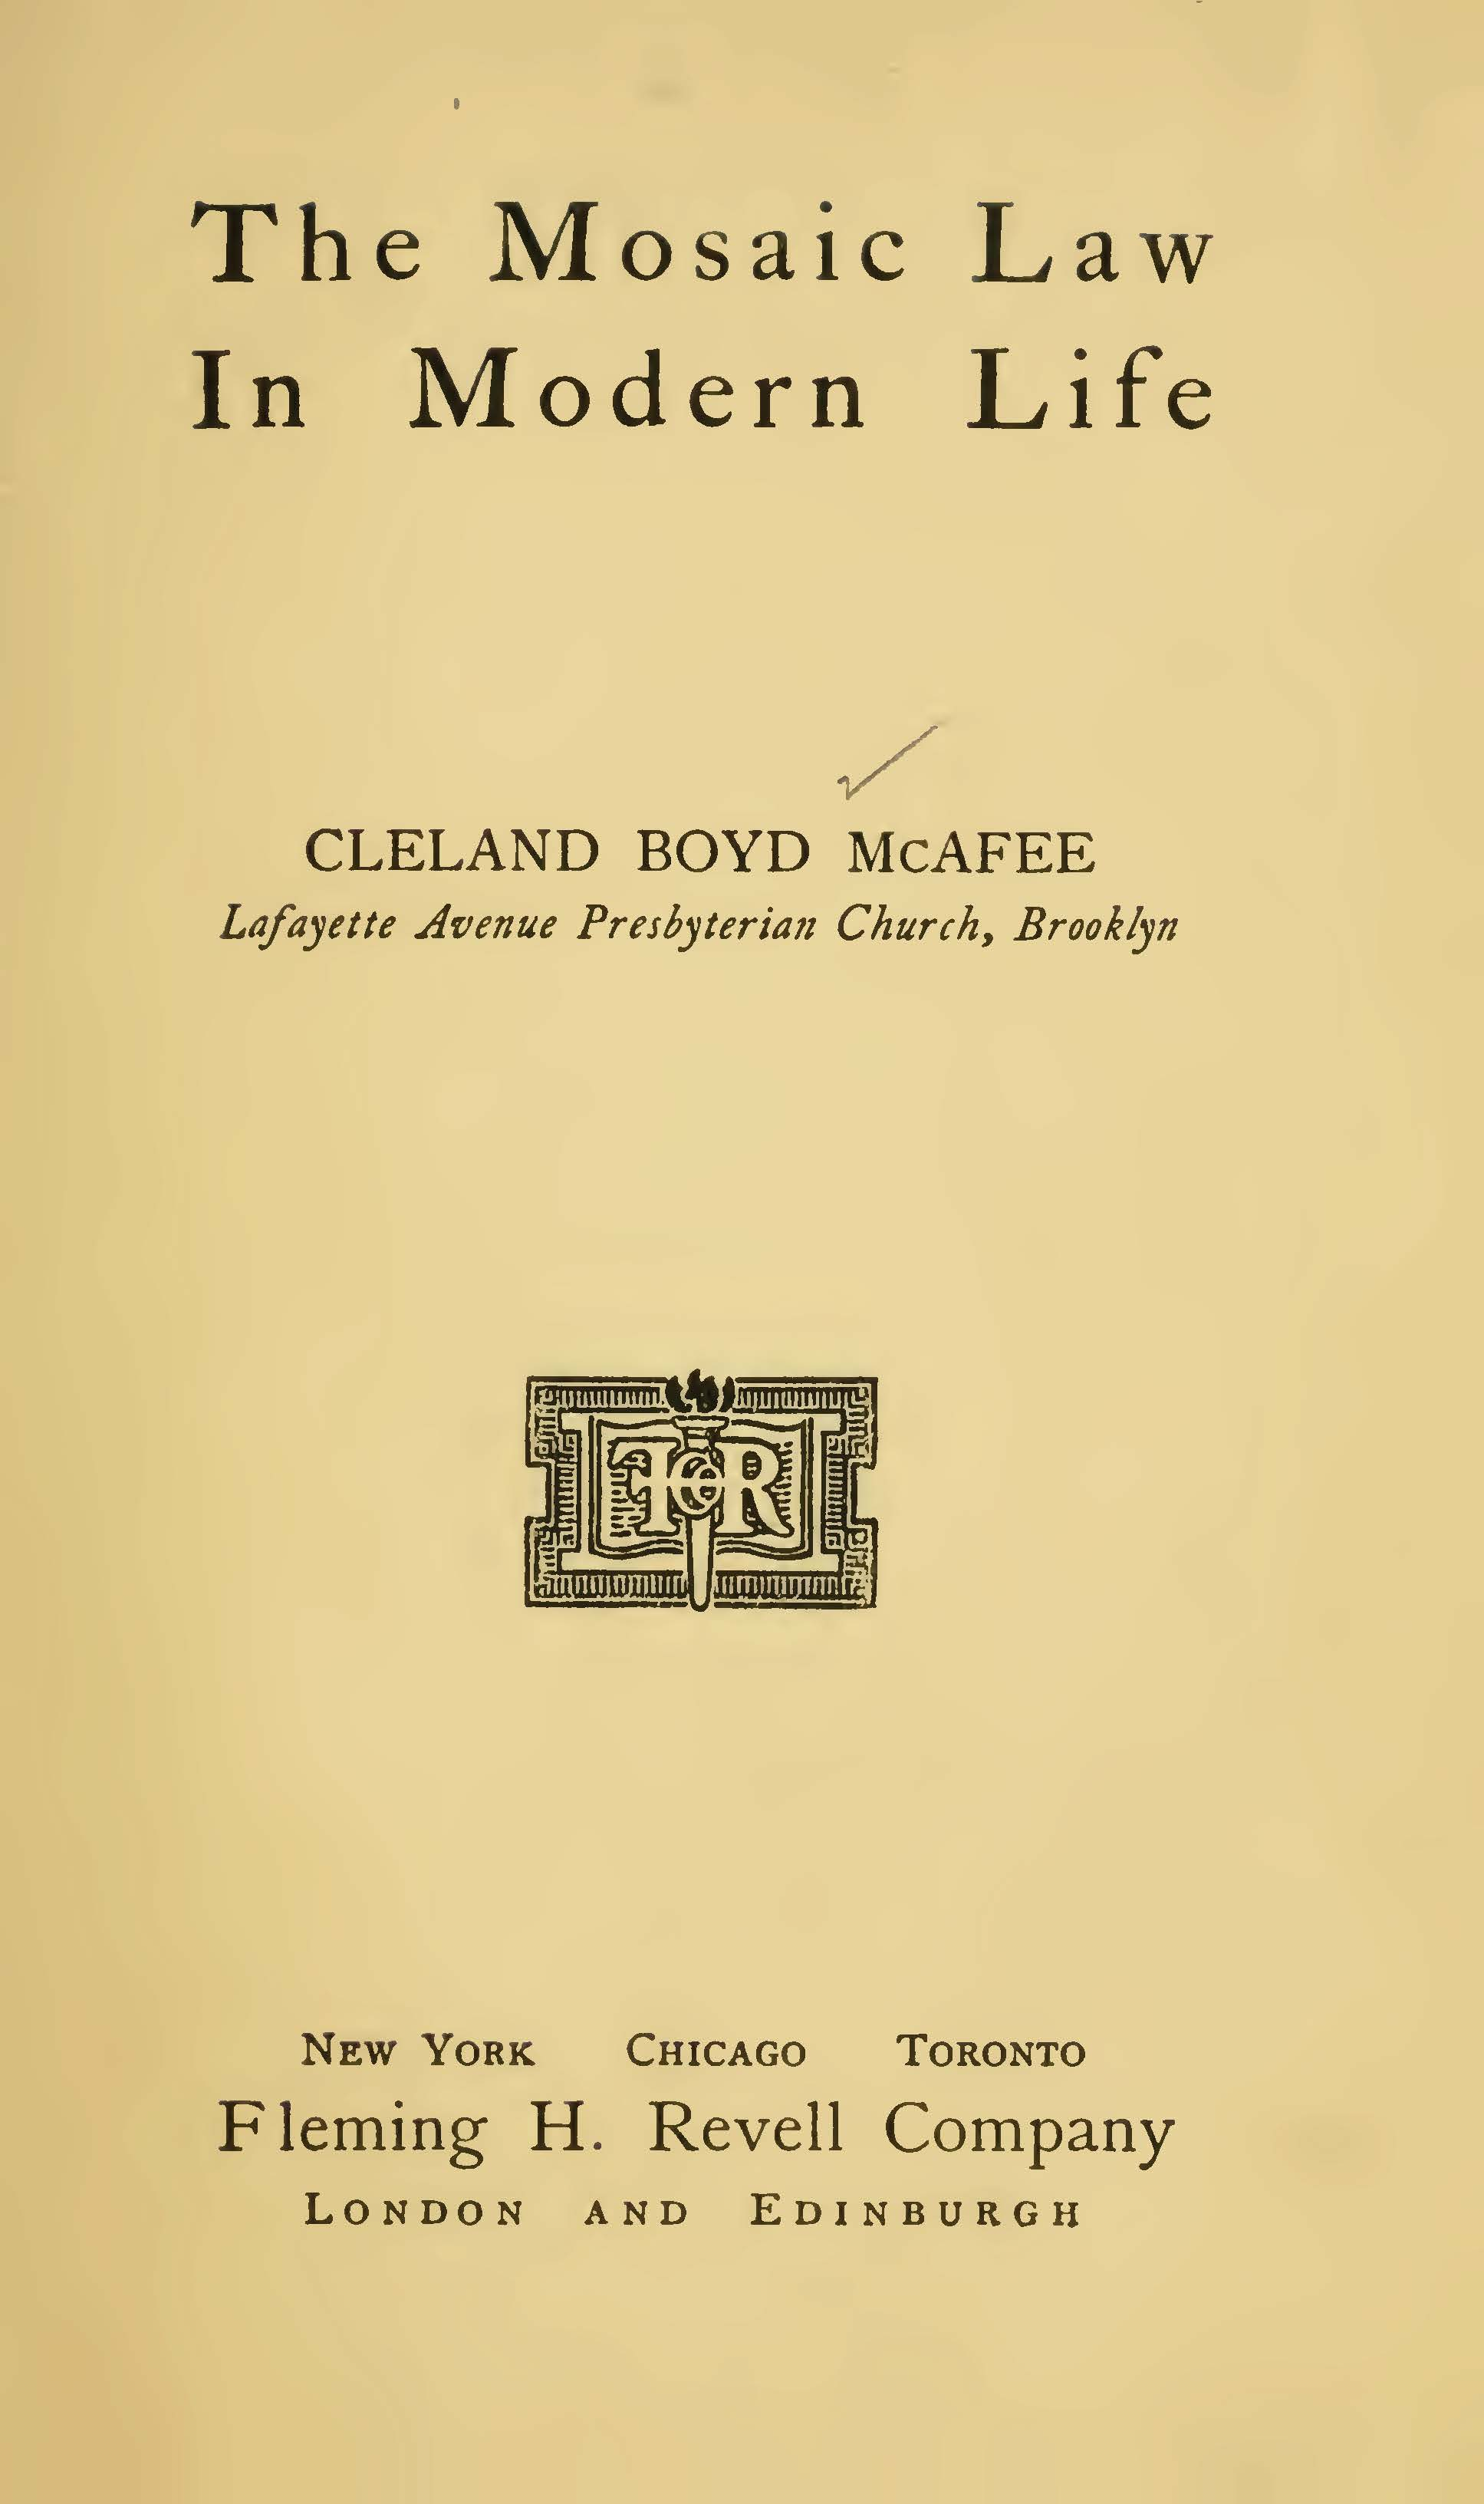 McAfee, Cleland Boyd, The Mosaic Law in Modern Life Title Page.jpg